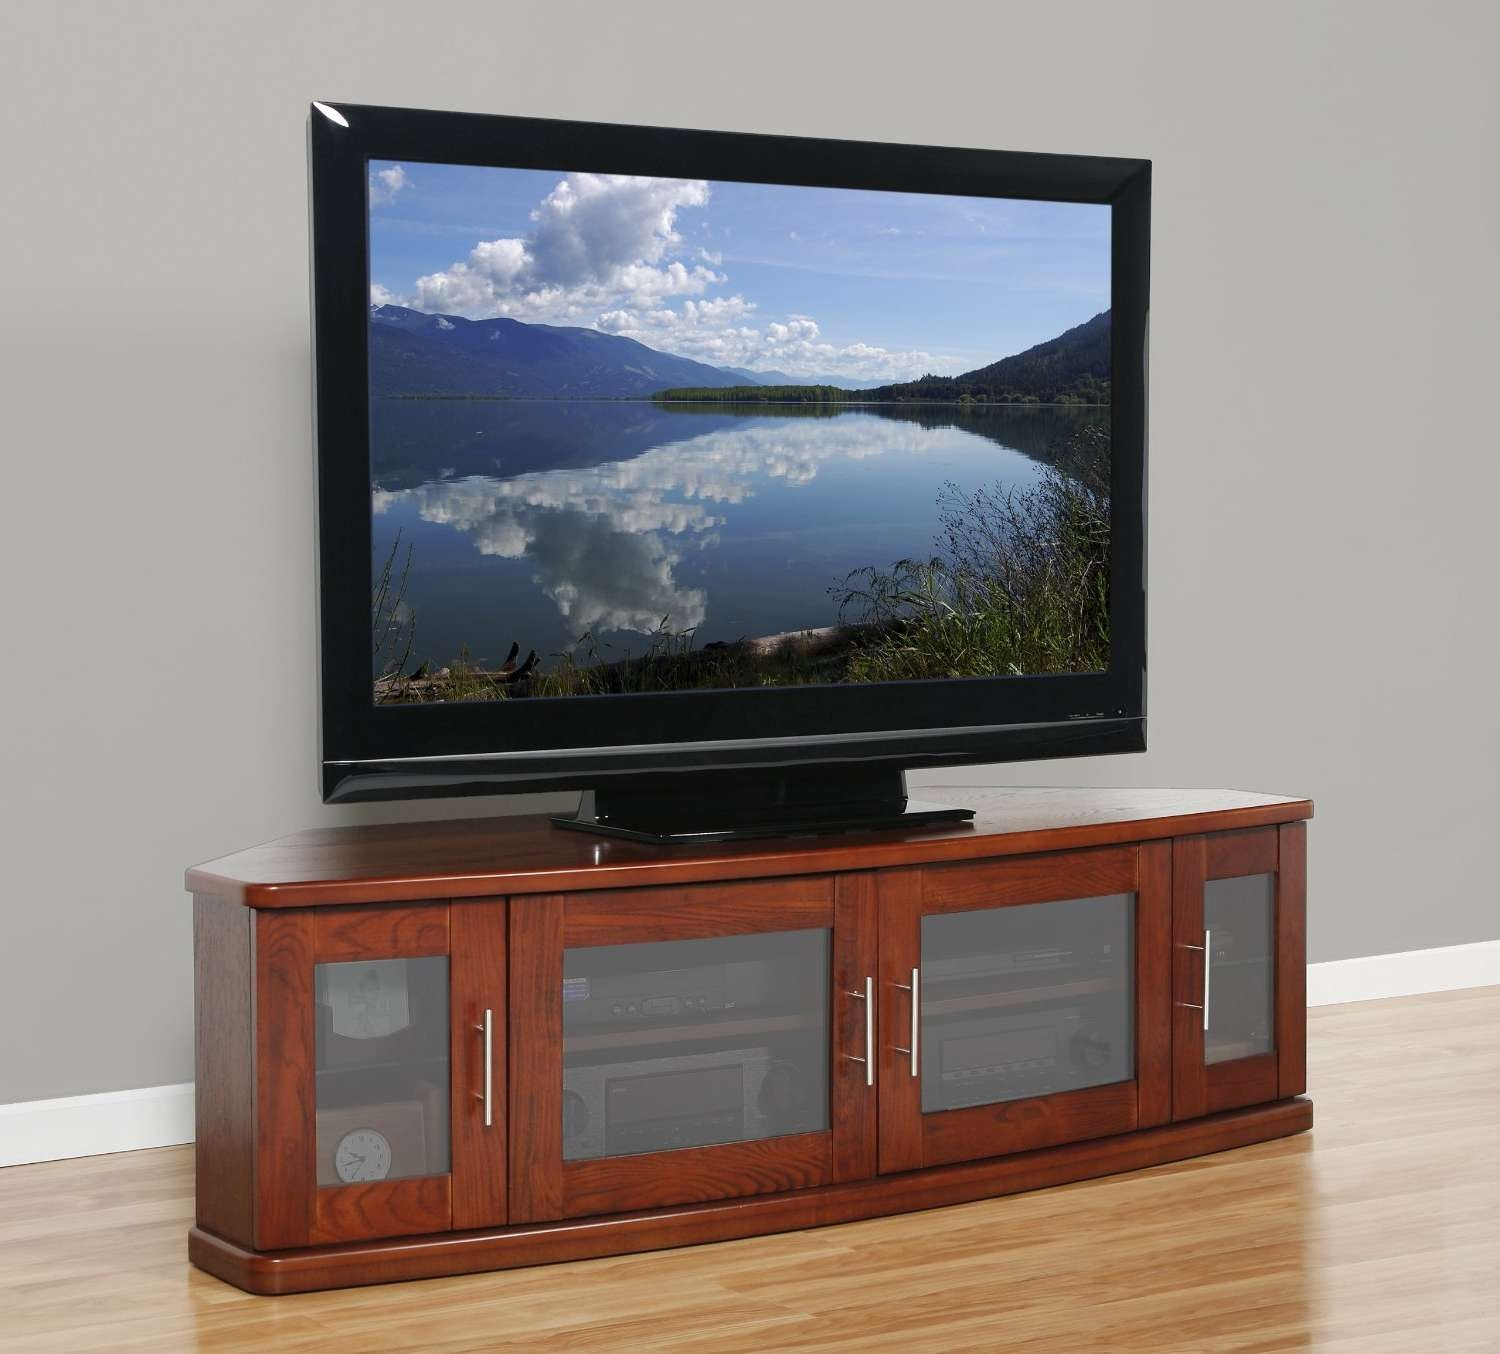 Curved Brown Figured Cherry Wood Low Cabinet For Tv Stand With 4 Throughout Long Wood Tv Stands (View 3 of 15)